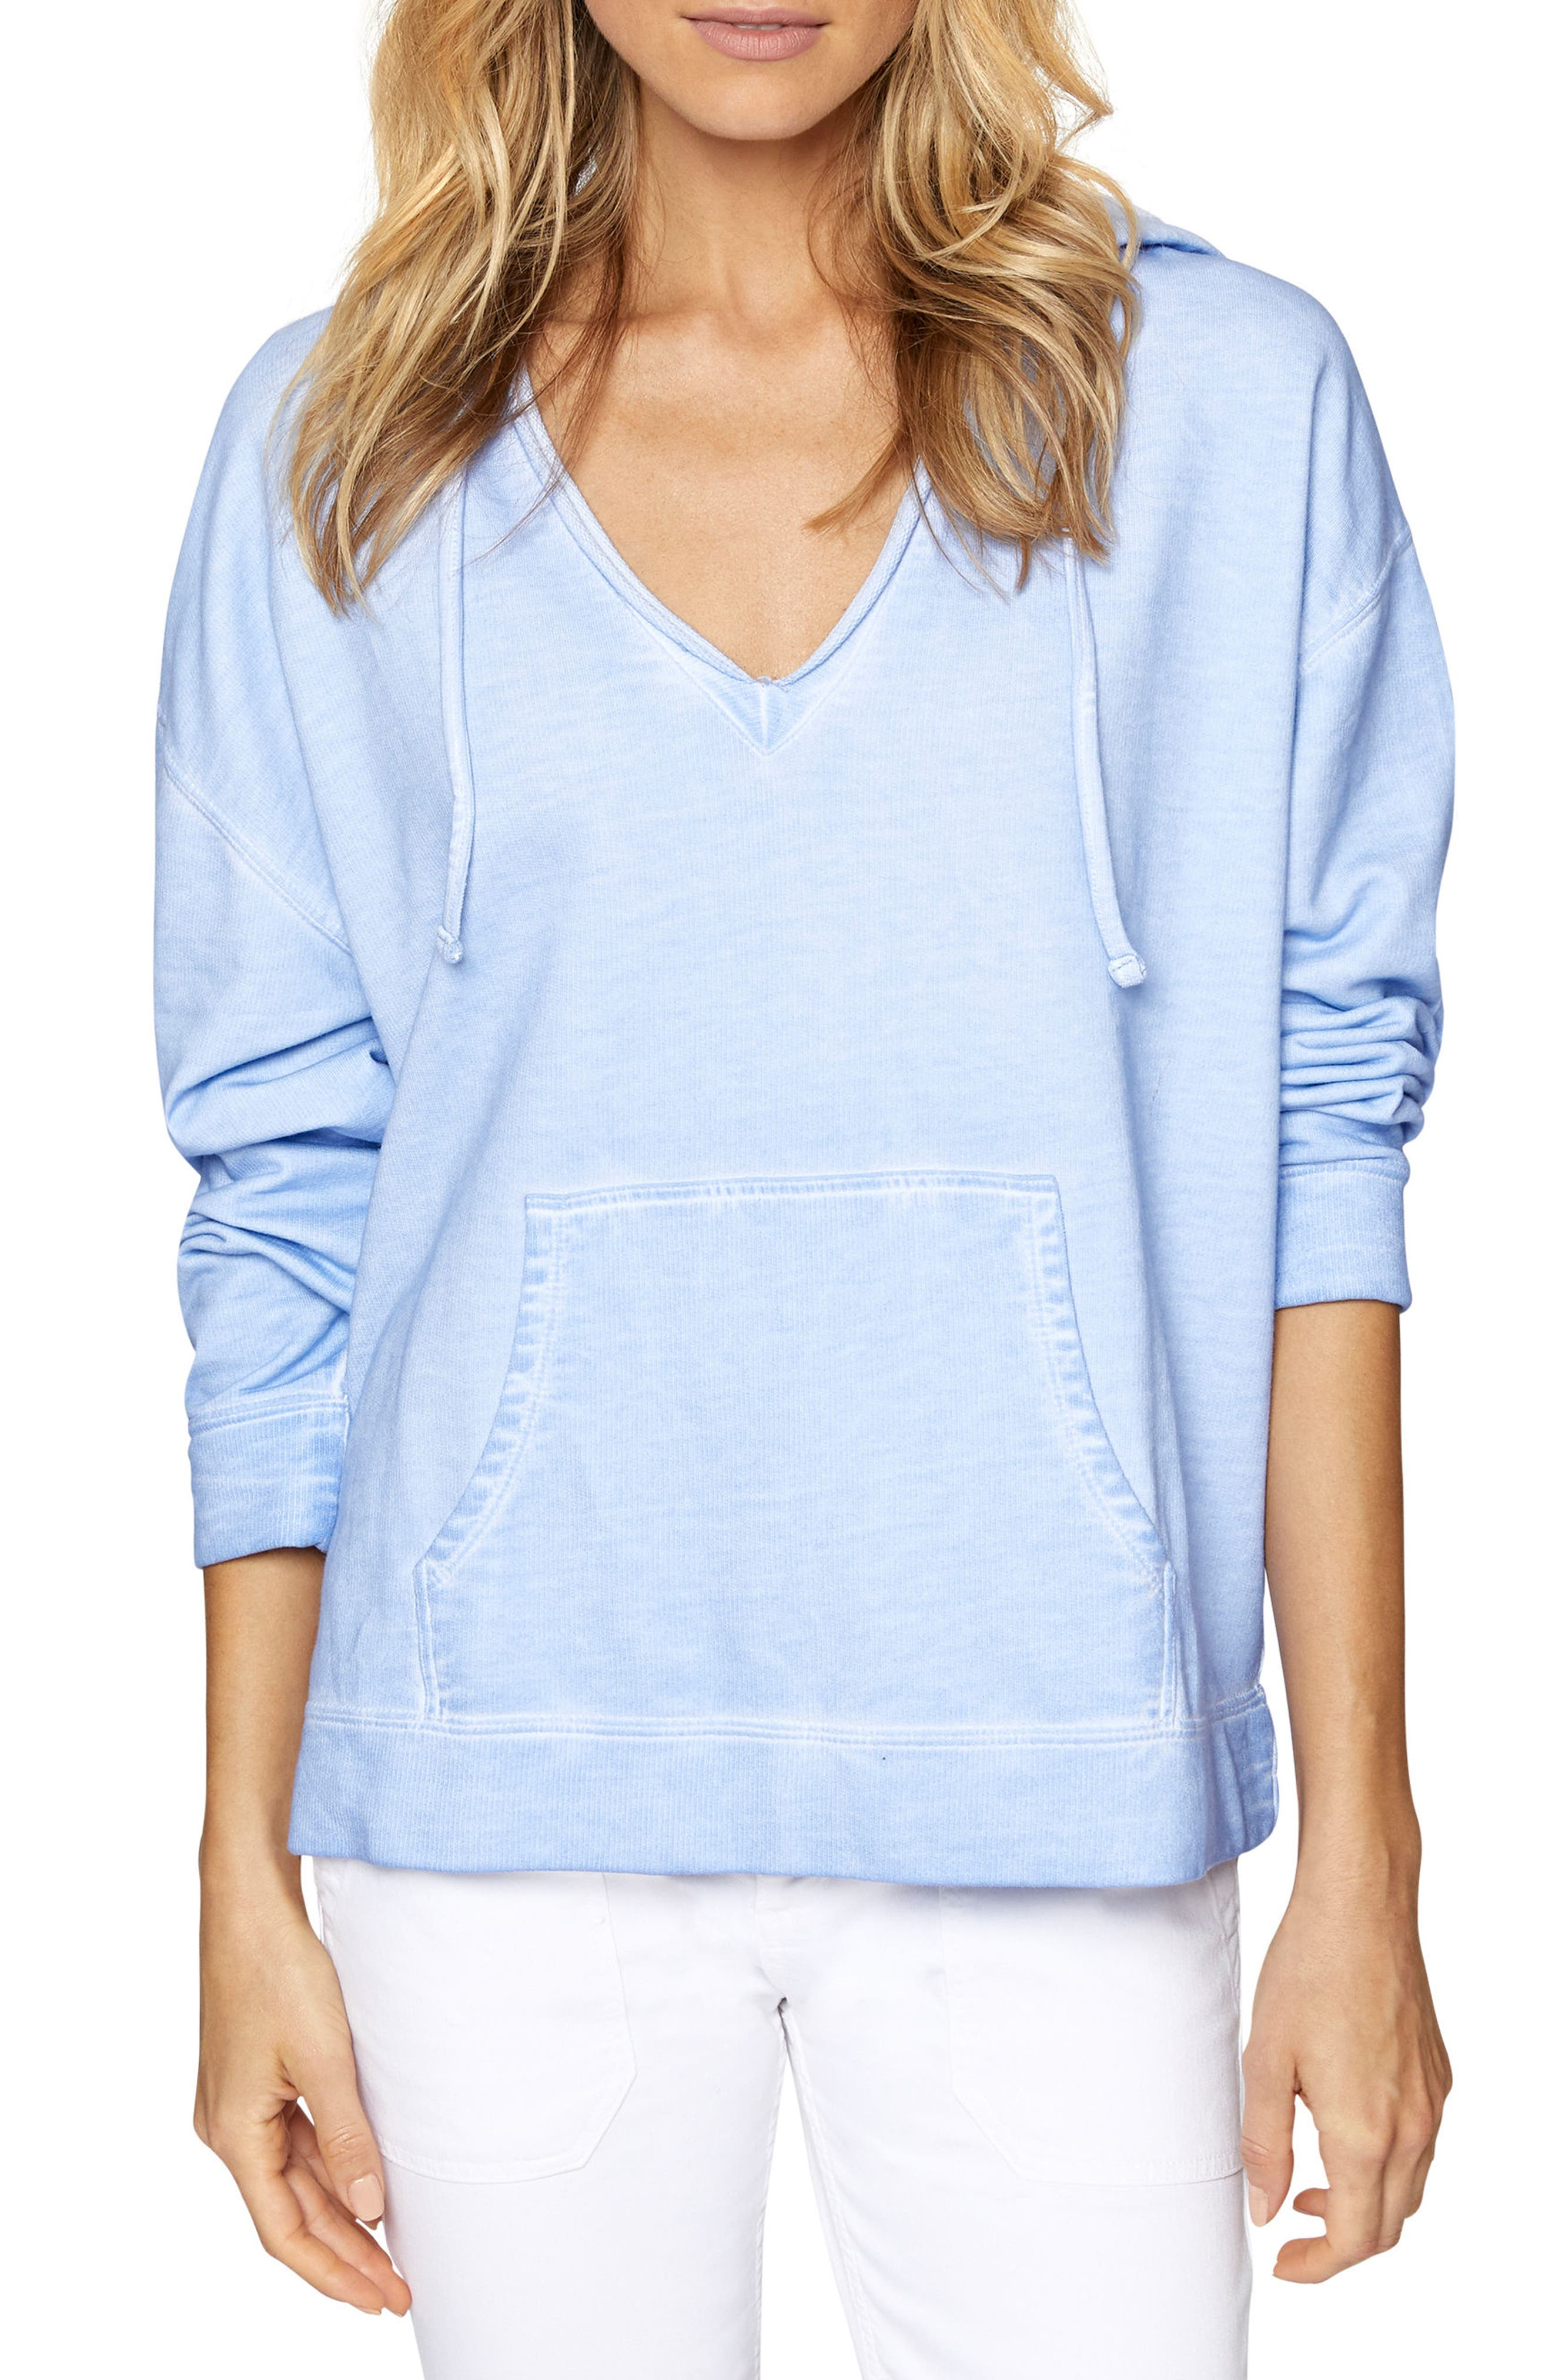 Shiloh Hoodie,                             Main thumbnail 1, color,                             Icy Blue